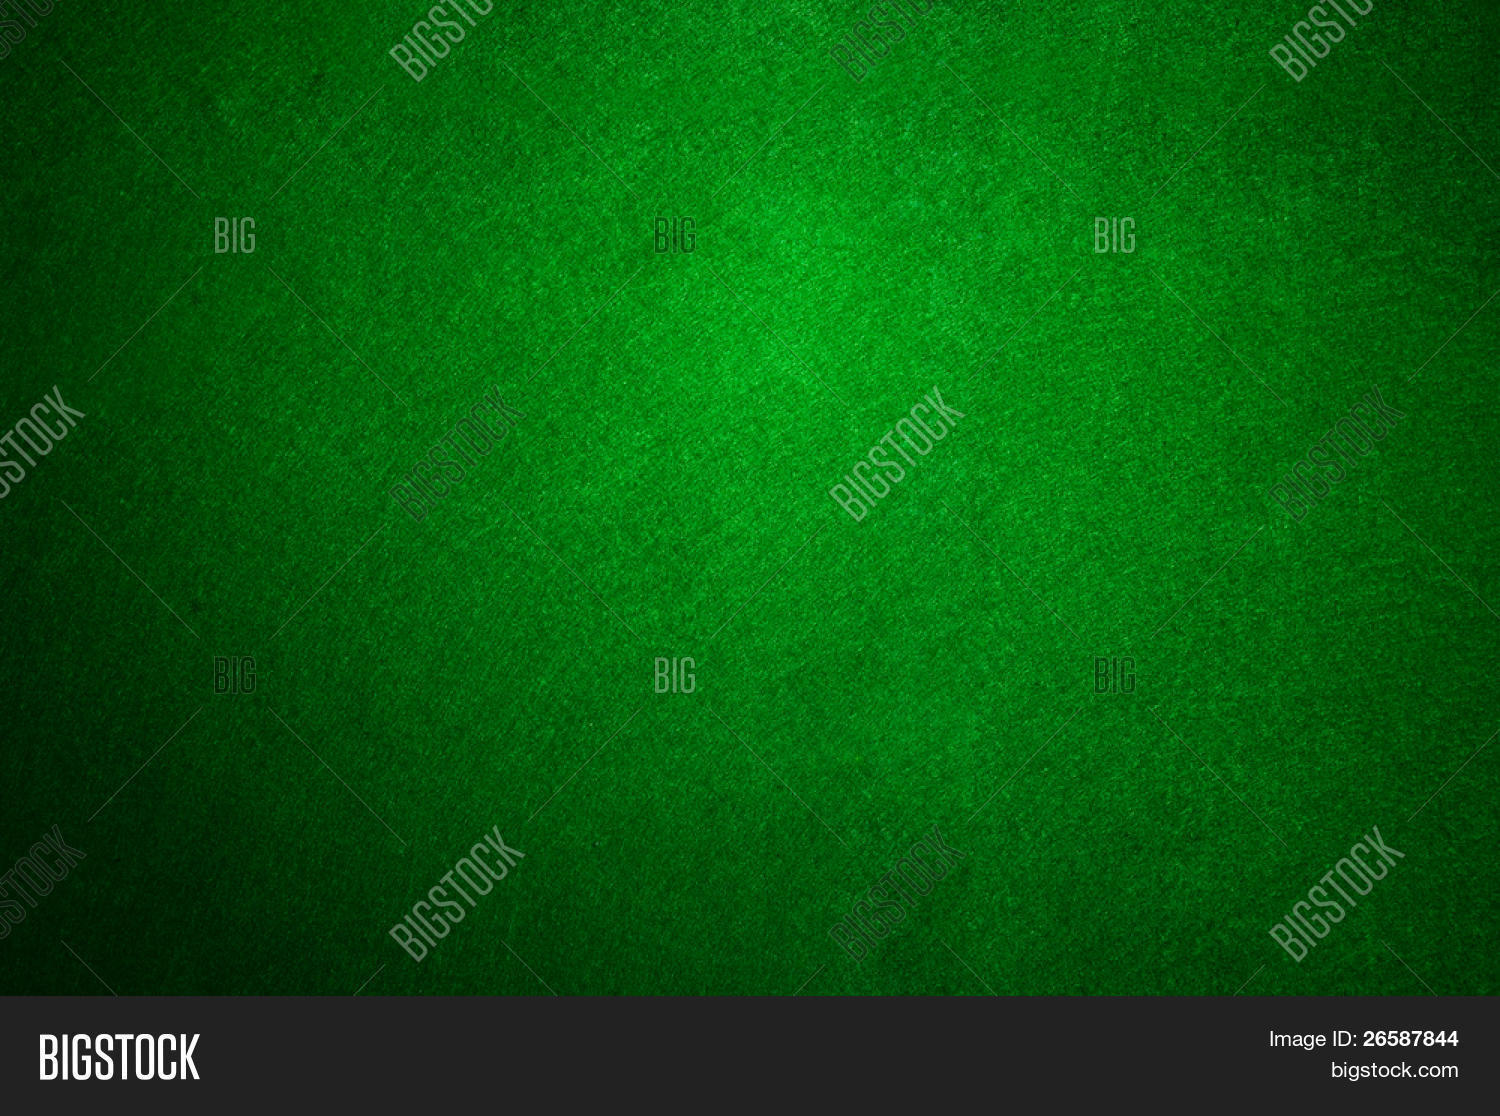 Poker table background - Poker Table Background